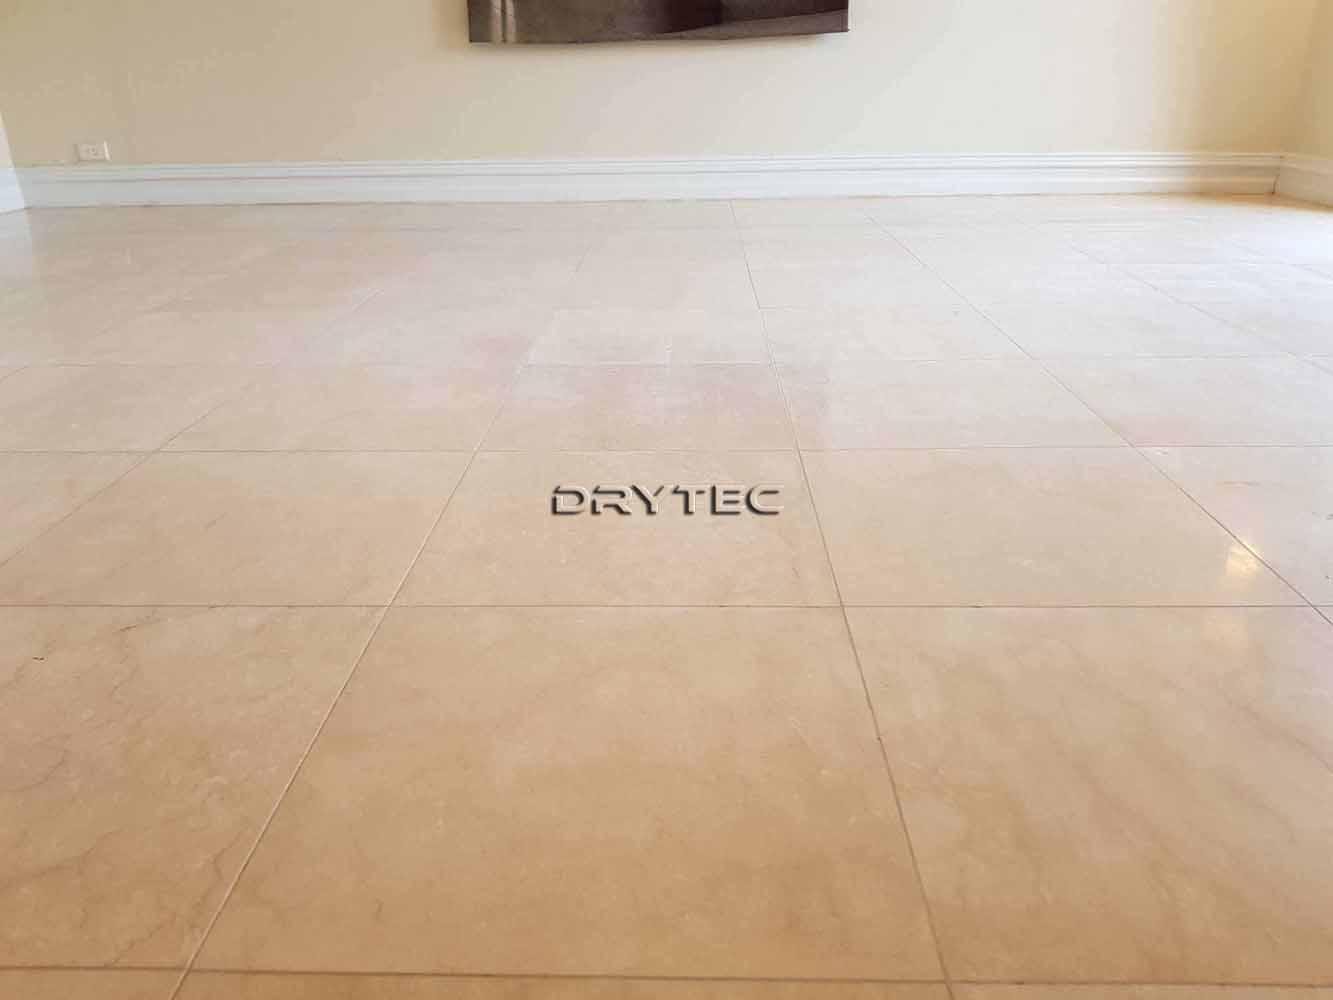 Limestone Floor Tiles Restoration-Grinding-Honing-Polishing-Cleaning and Sealing Service in Perth WA